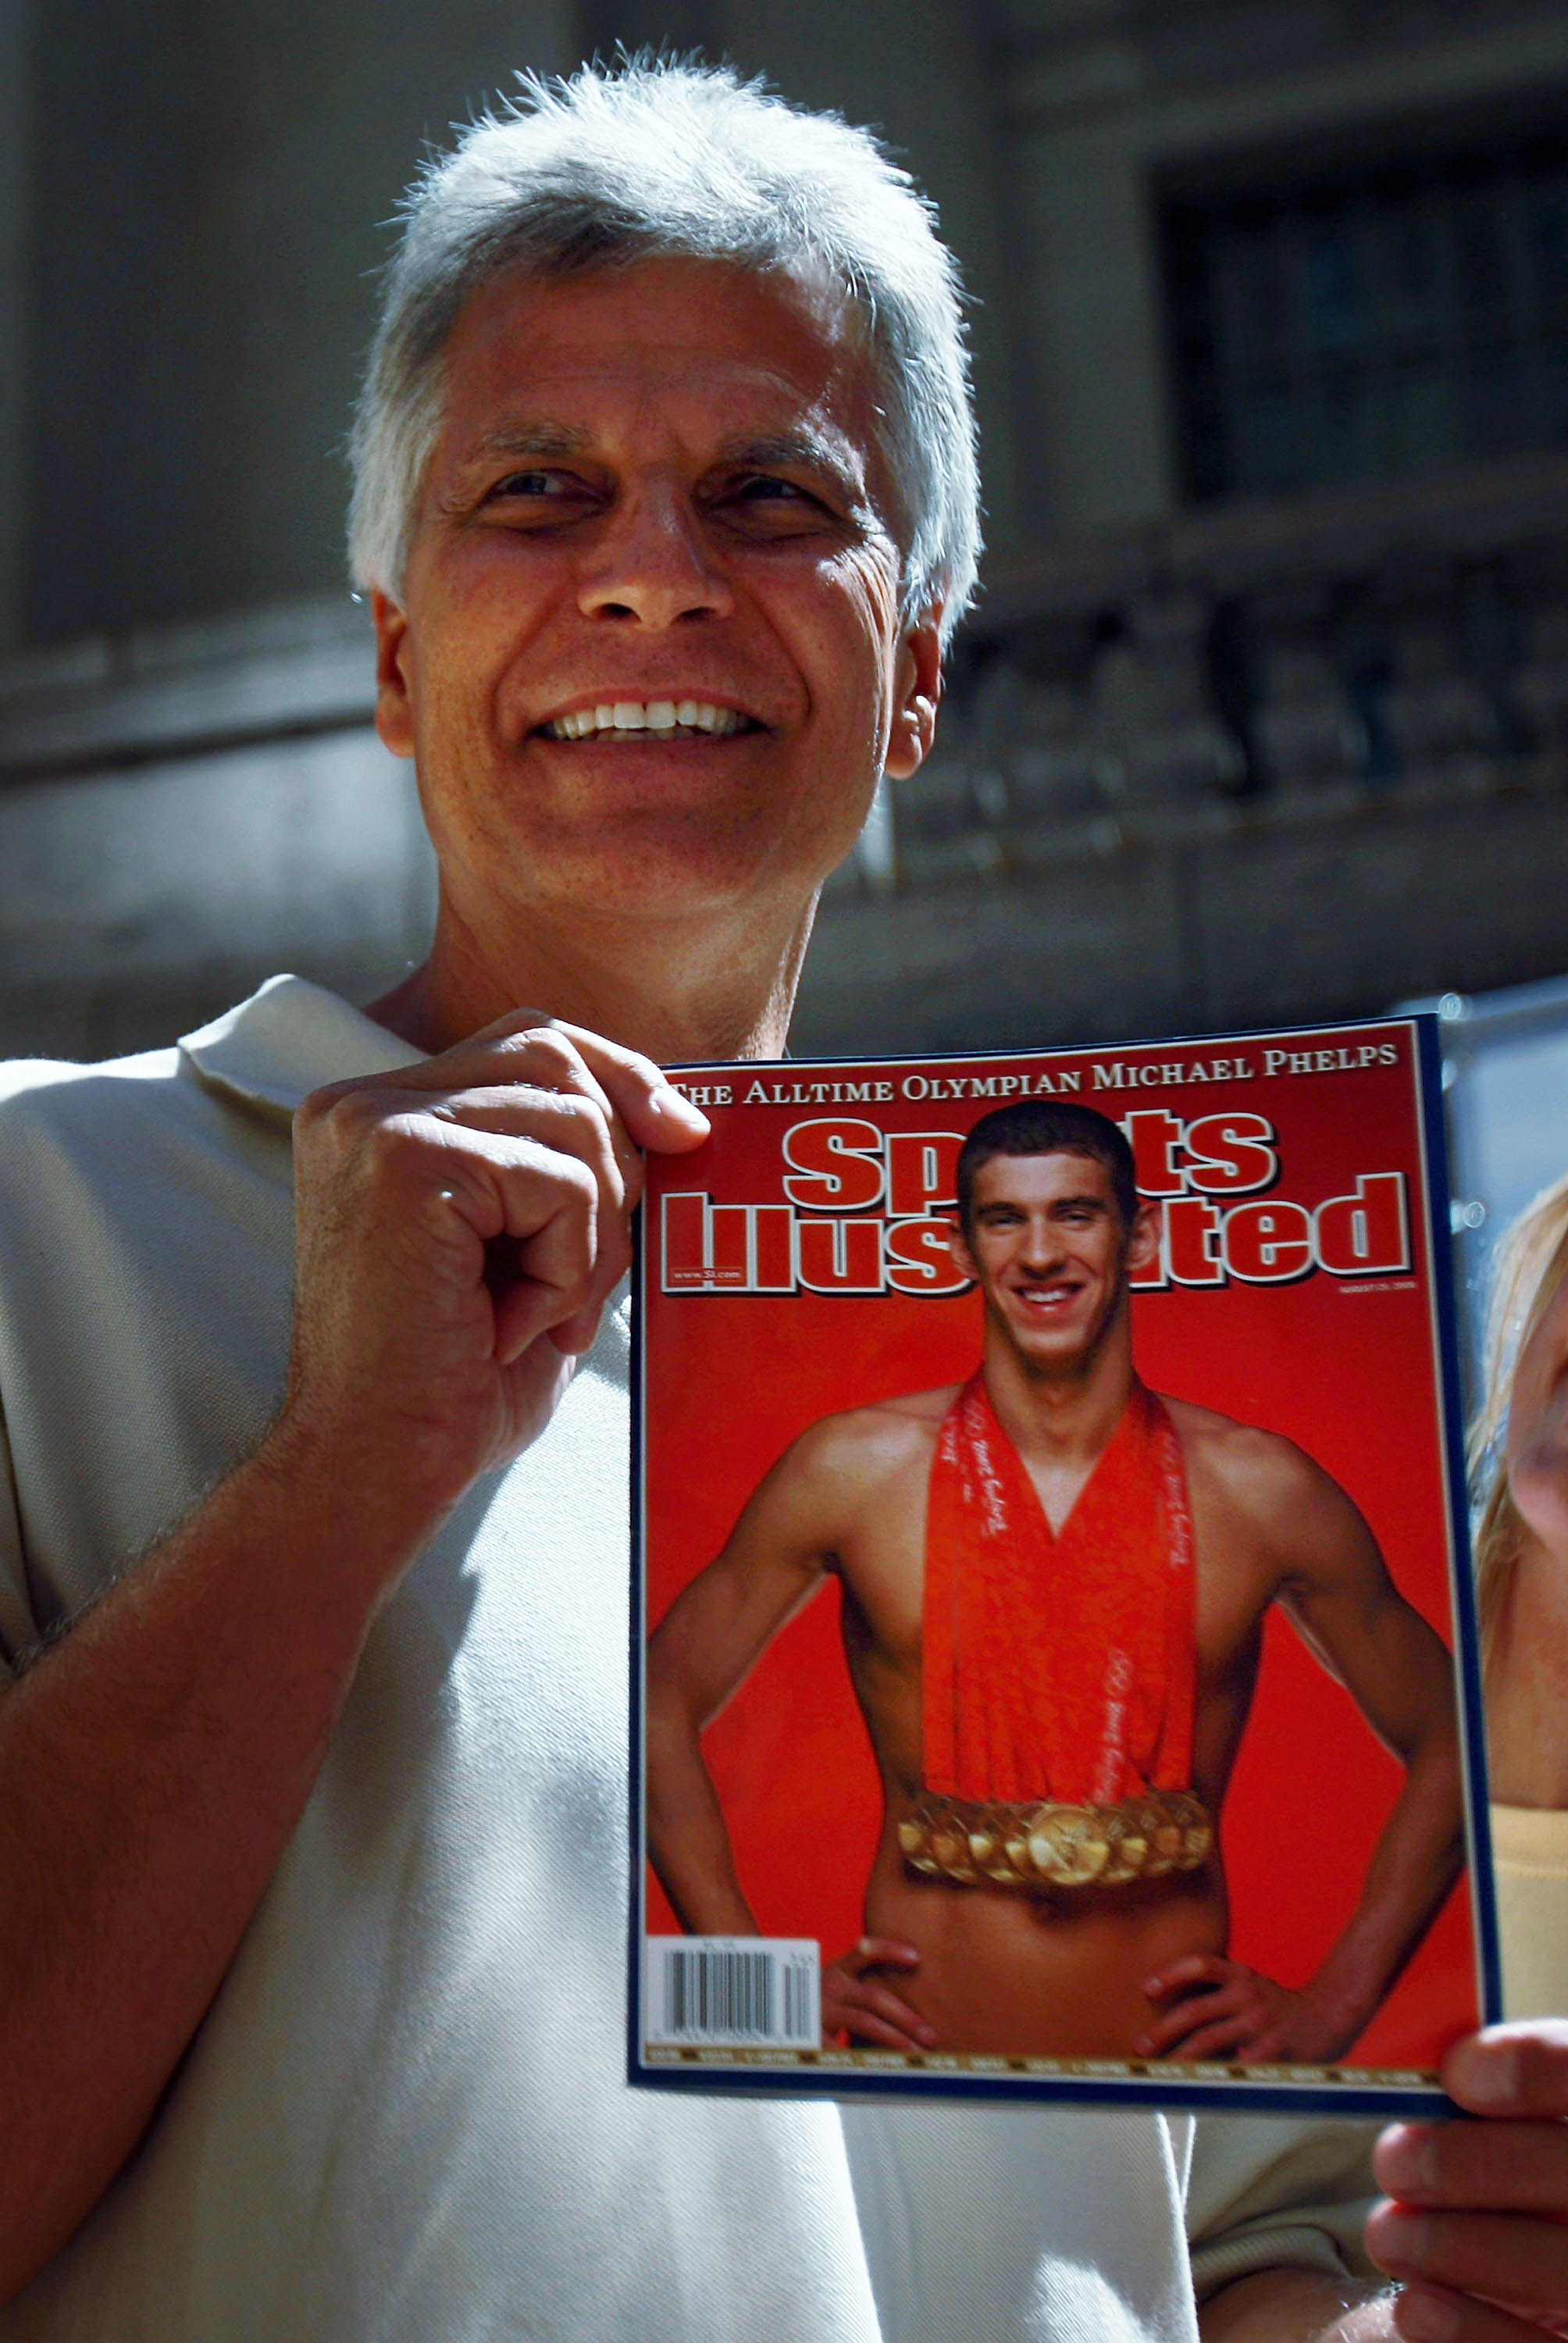 NEW YORK - AUGUST 20:  Swimmer Mark Spitz holds up a copy of the new issue of Sports Illustrated featuring a picture of Olympic swimmer Michael Phelps at Grand Central Station August 20, 2008 in New York City. Spitz's record of breaking seven world record